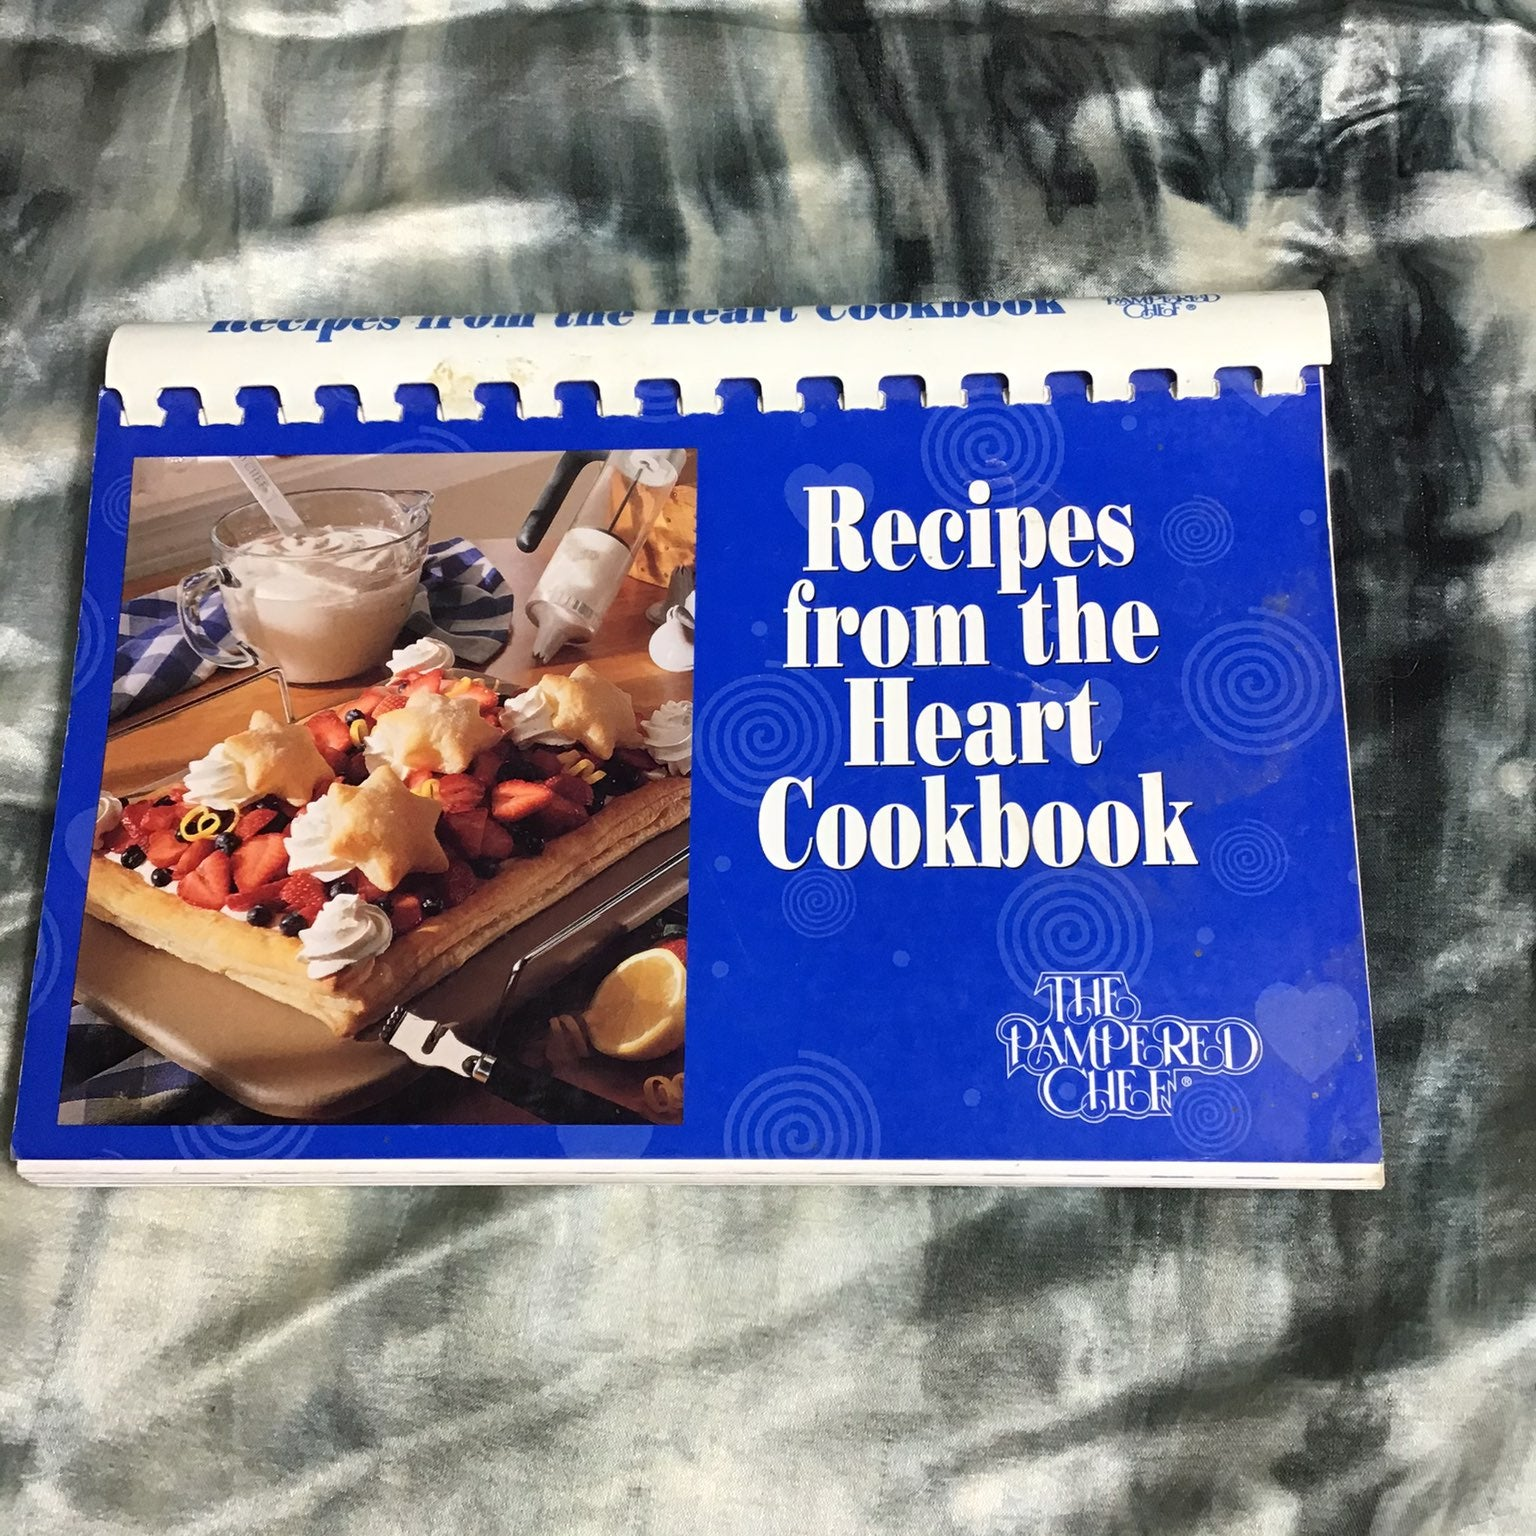 cipes From The Heart Cookbook